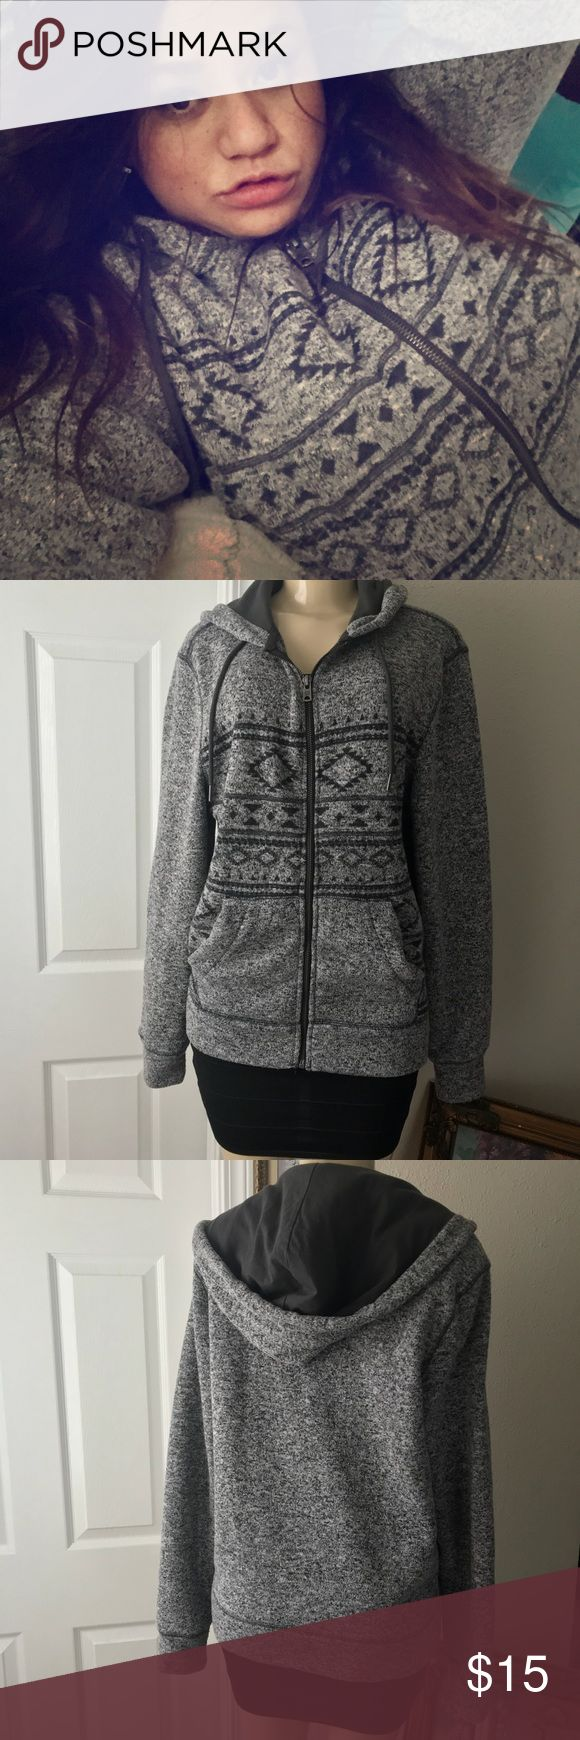 AEROPOSTALE :| Hooded Zip-up Sweatshirt.GRAY.SMALL BRAND:AEROPOSTALE . Hooded drawstring Zip-up Sweatshirt. Warm Rayon blend material with Aztec Design. Please refer to last photo for details on material. COLOR:GRAY. Perfect condition. Very Minor signs of normal wear. Overall Pristine condition perfect for Winter! No flaw. Women's:Size:SMALL. Aeropostale Sweaters Crew & Scoop Necks